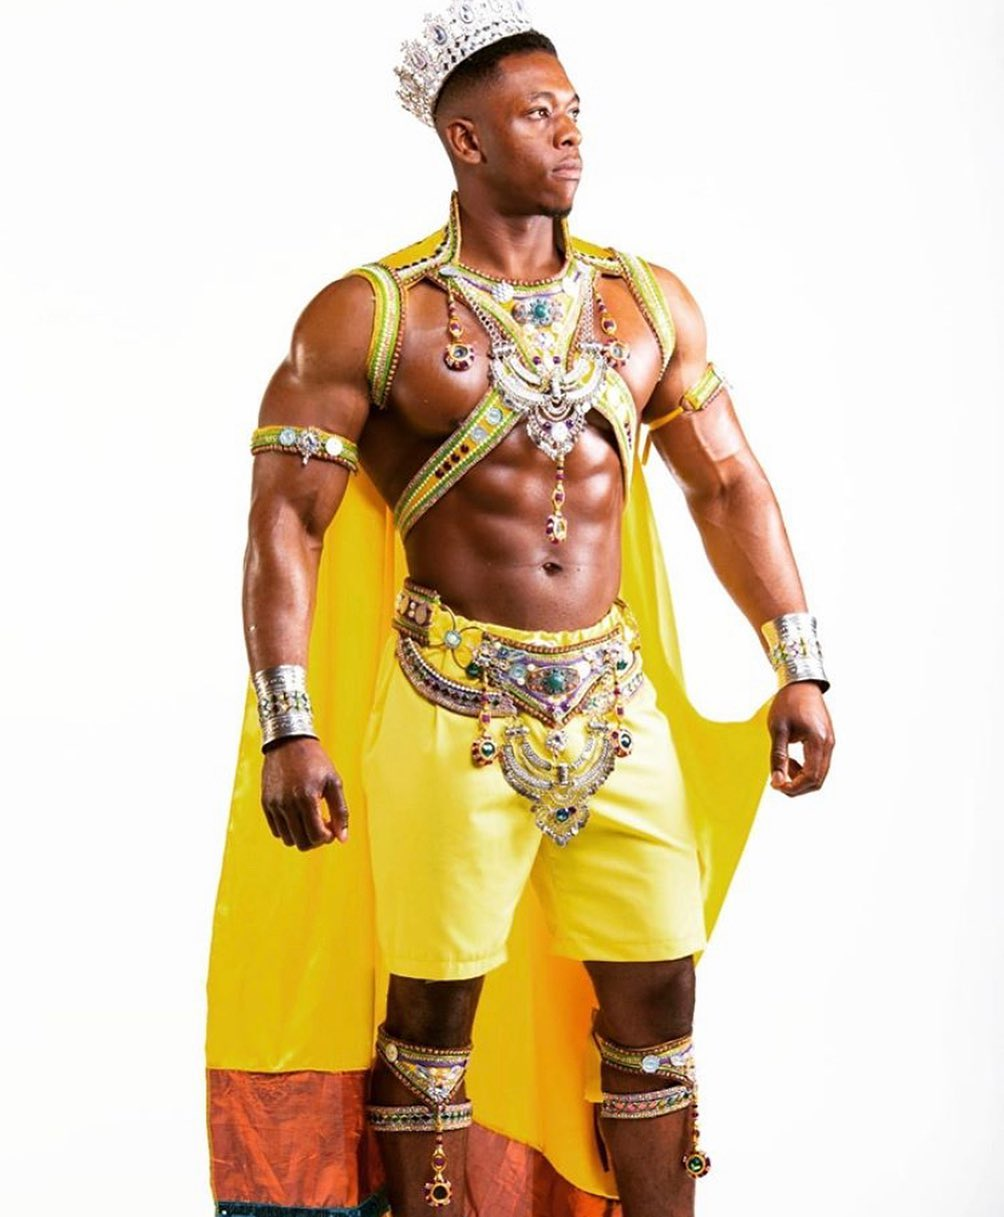 Men's Samba Yellow Shorts with Colourful Accessories and Belt with Rhinestones.